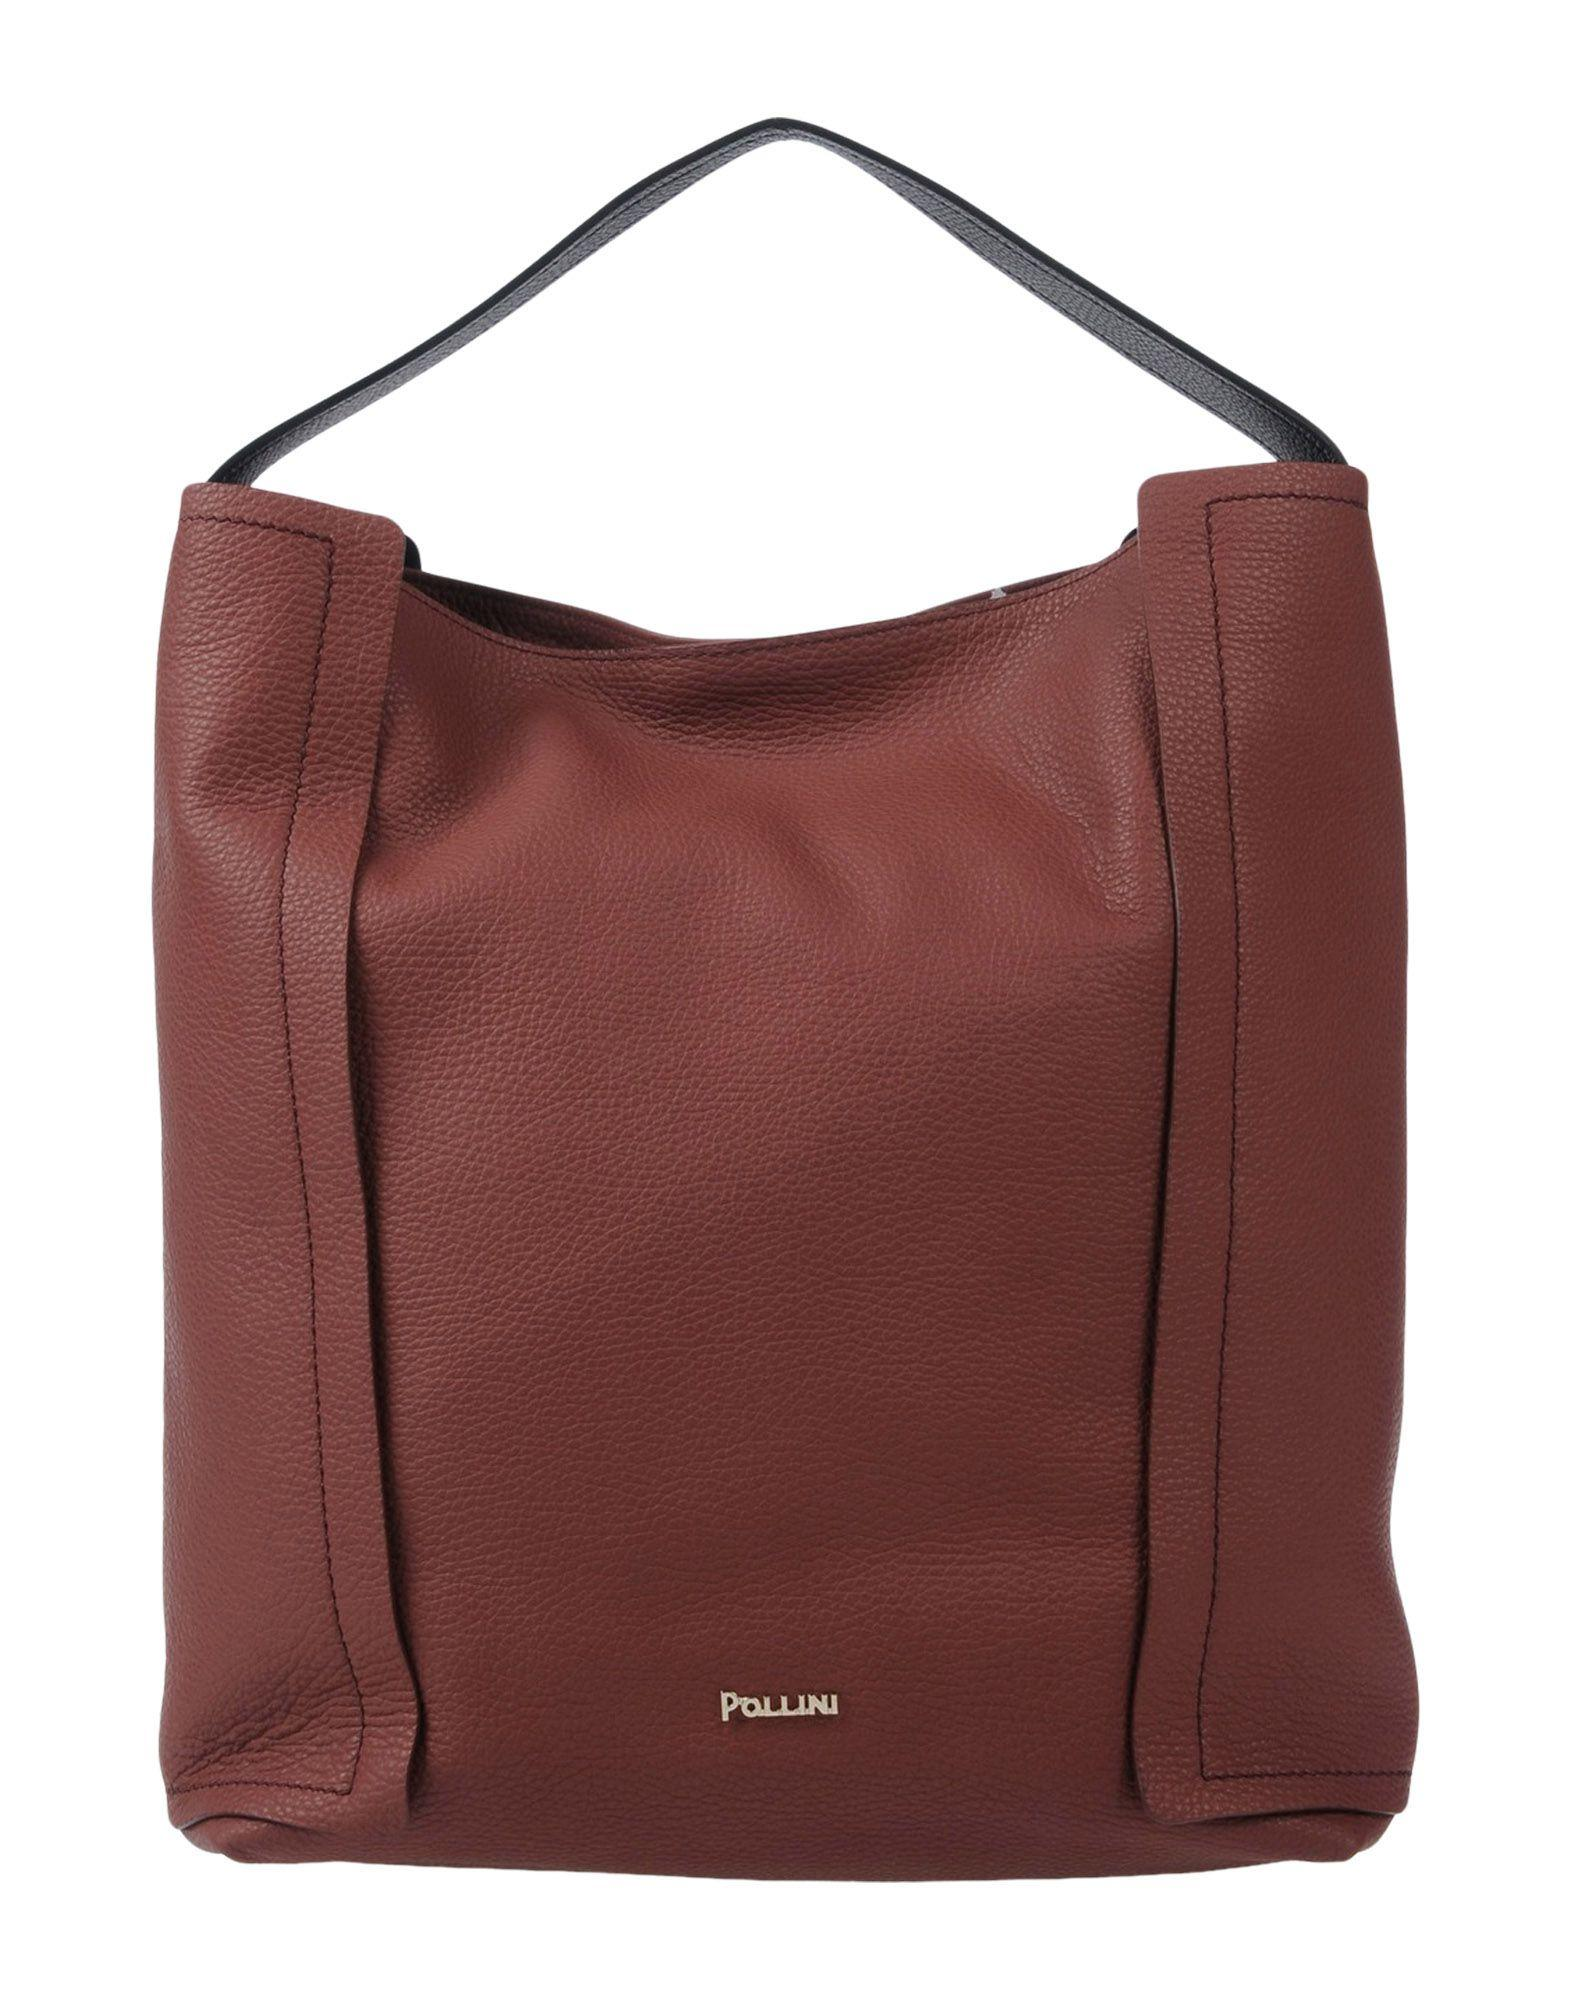 Pollini Handbag In Brick Red